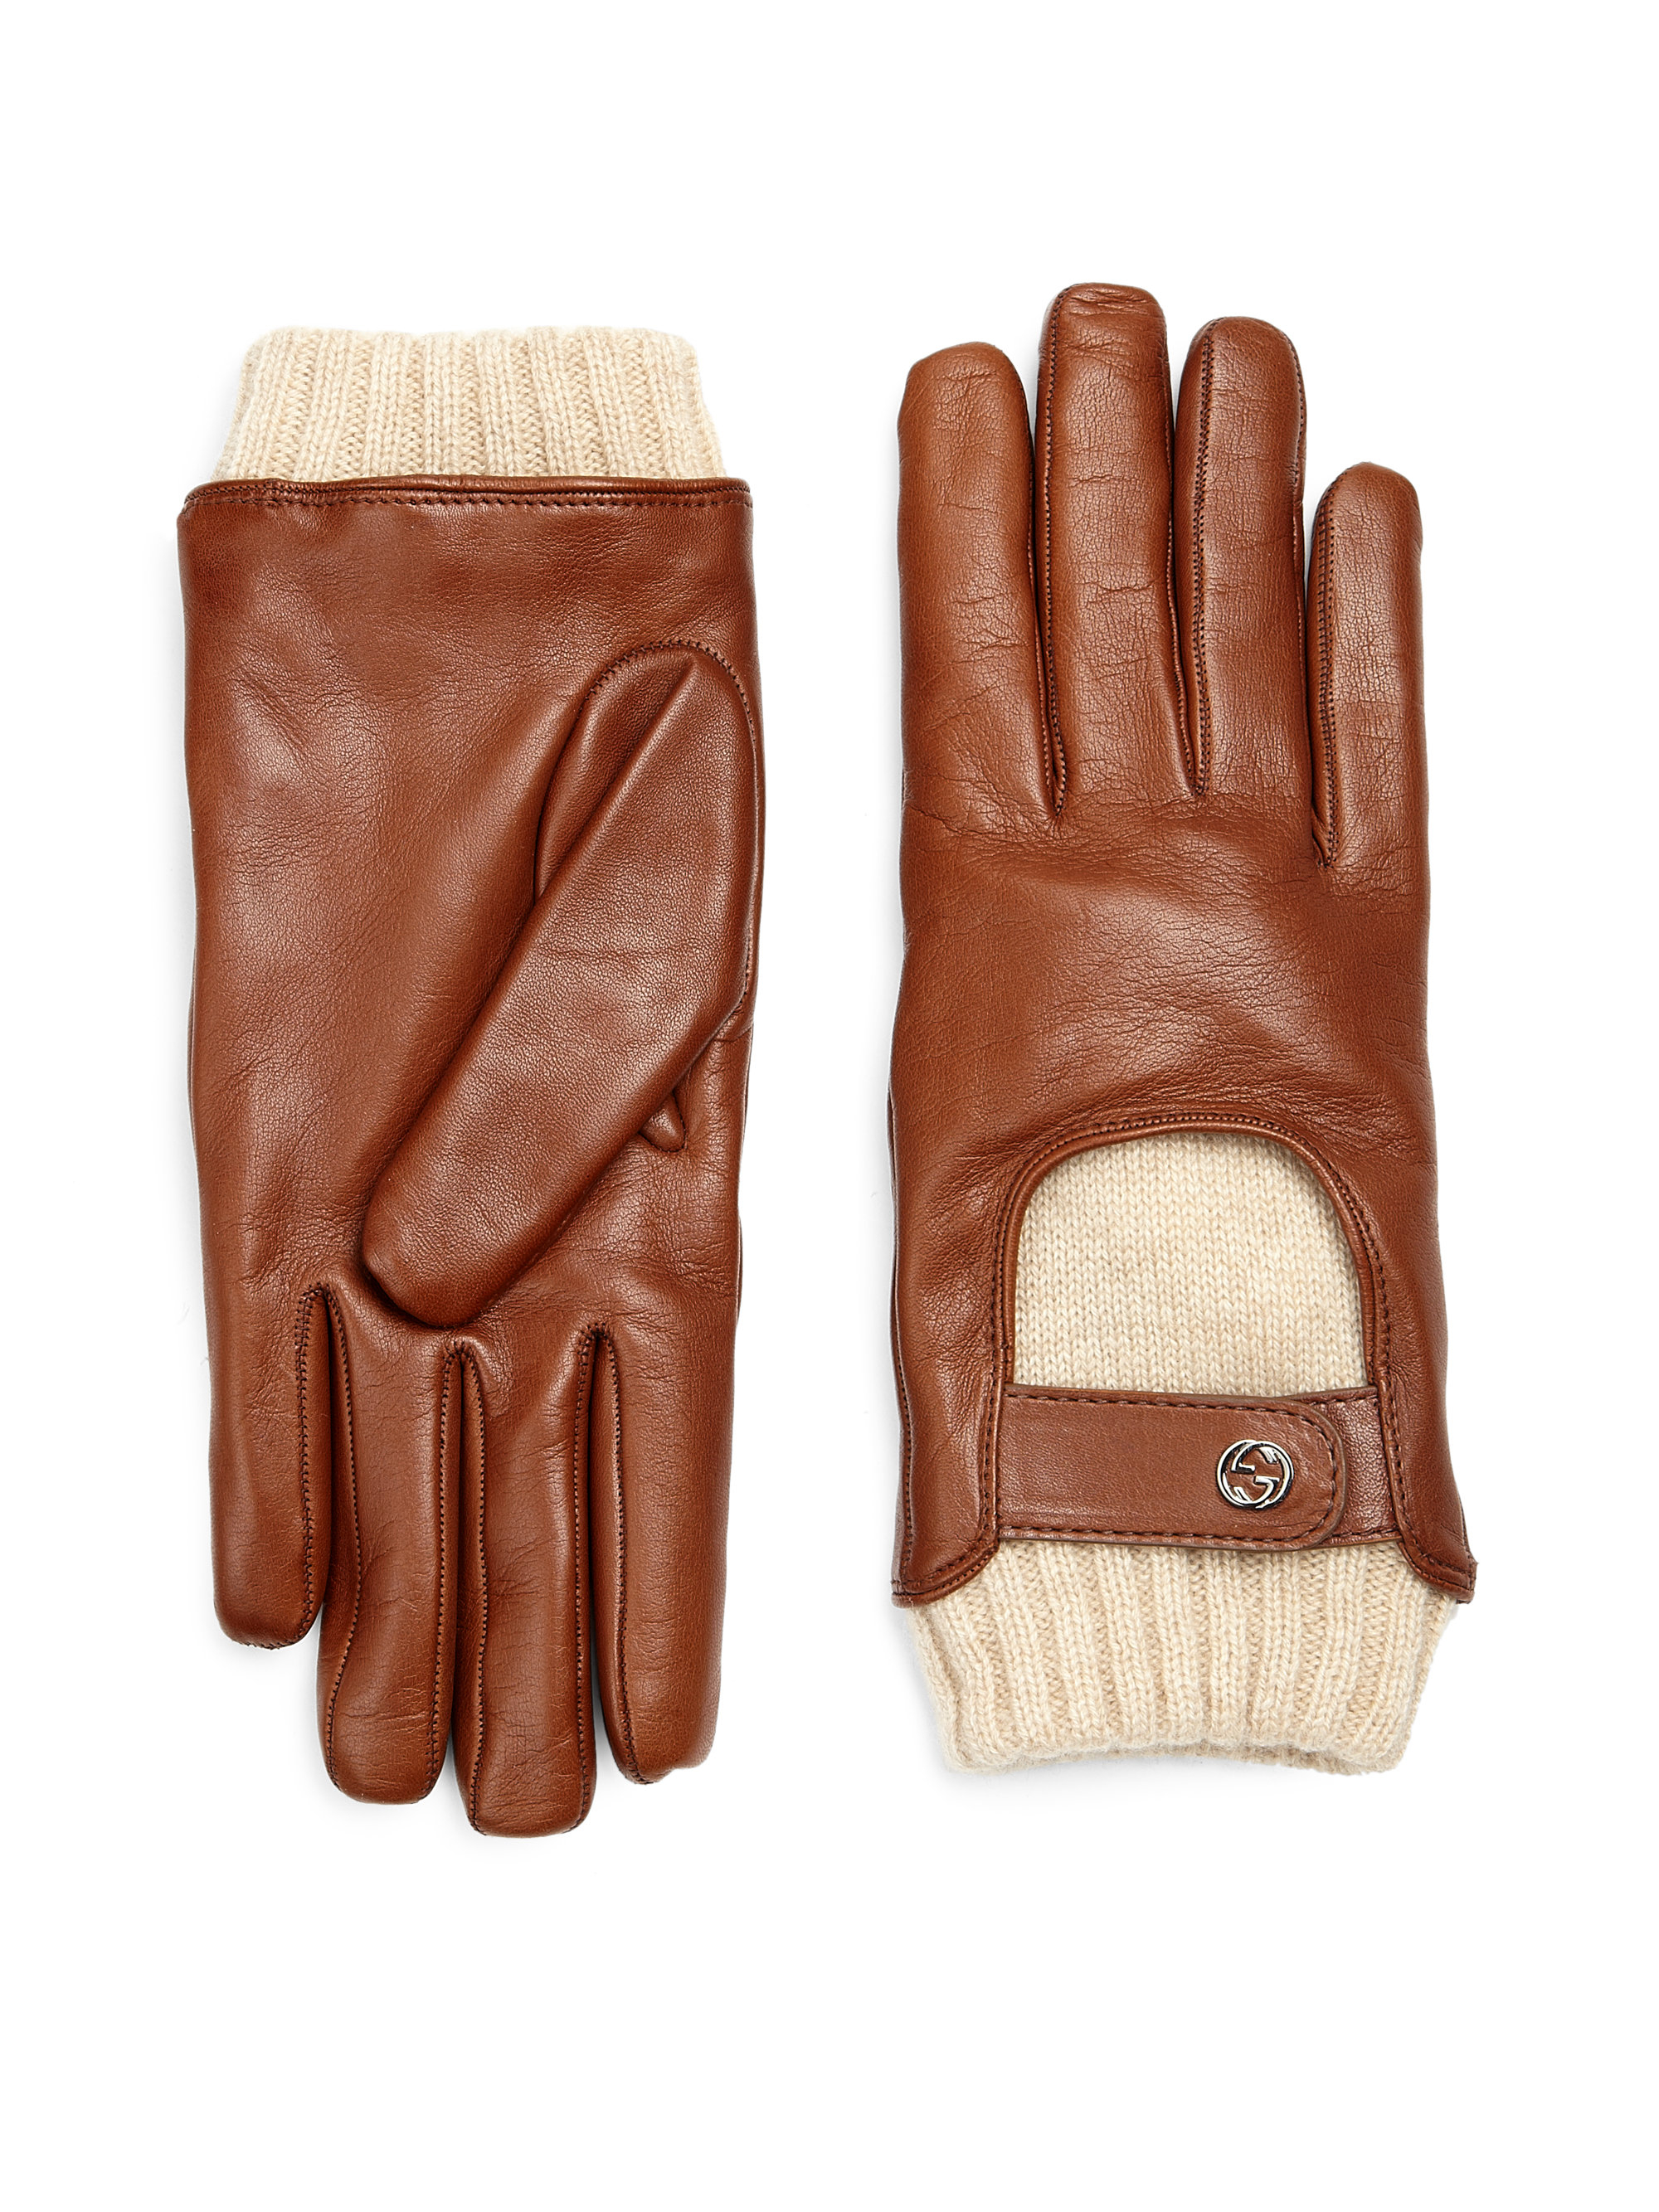 Tiger leather driving gloves -